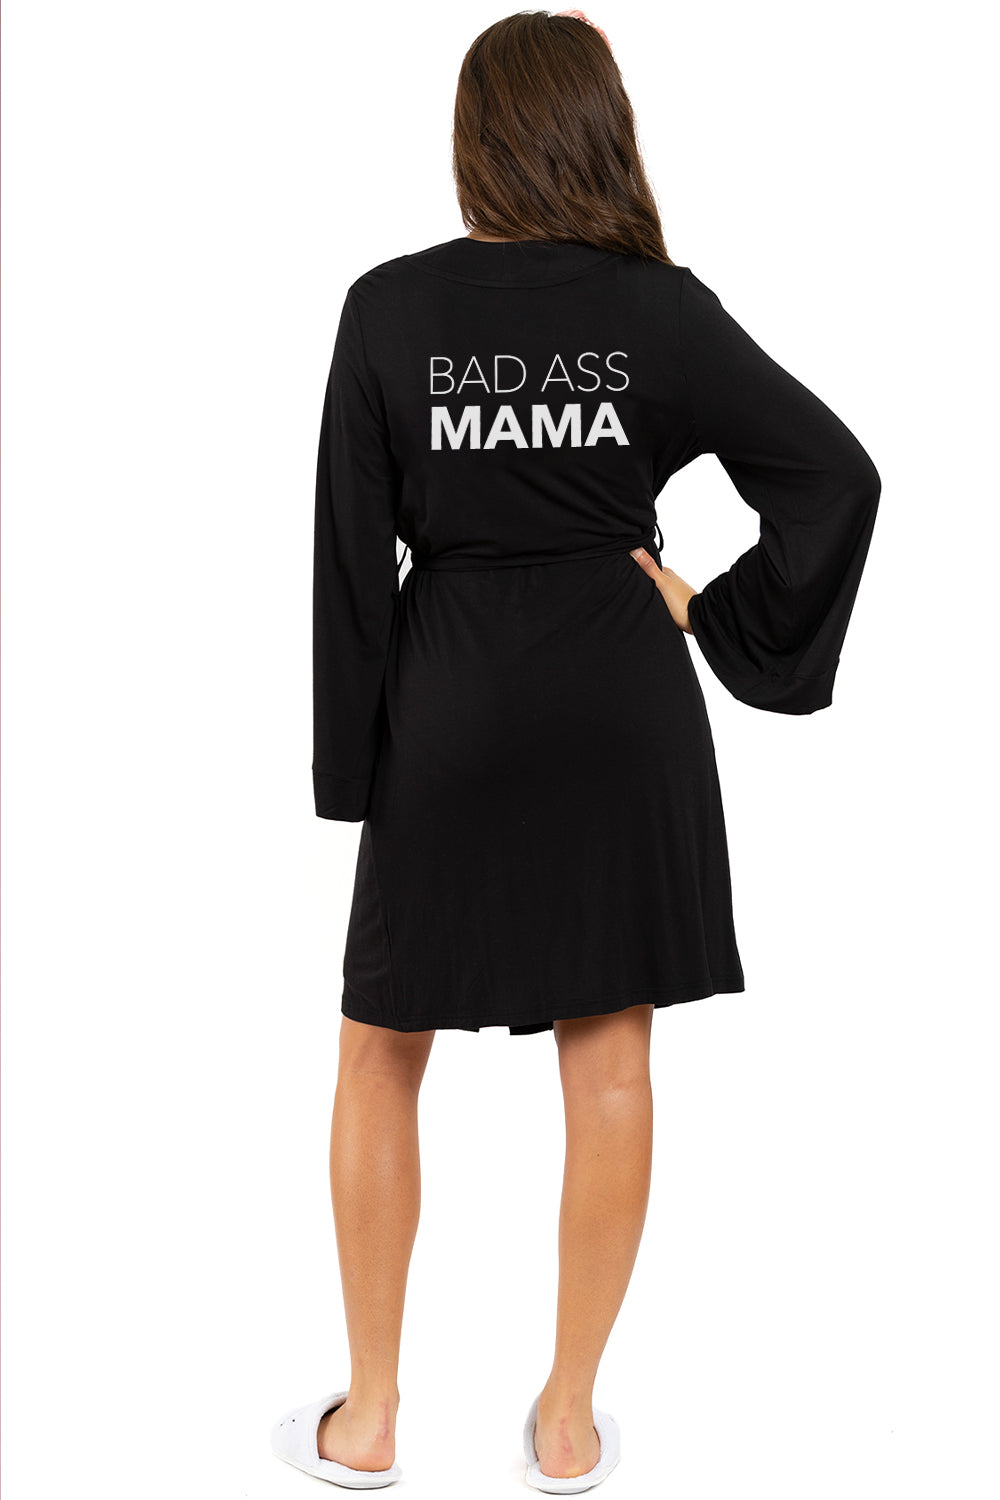 LIGHTWEIGHT ROBE - Bad Ass Mama